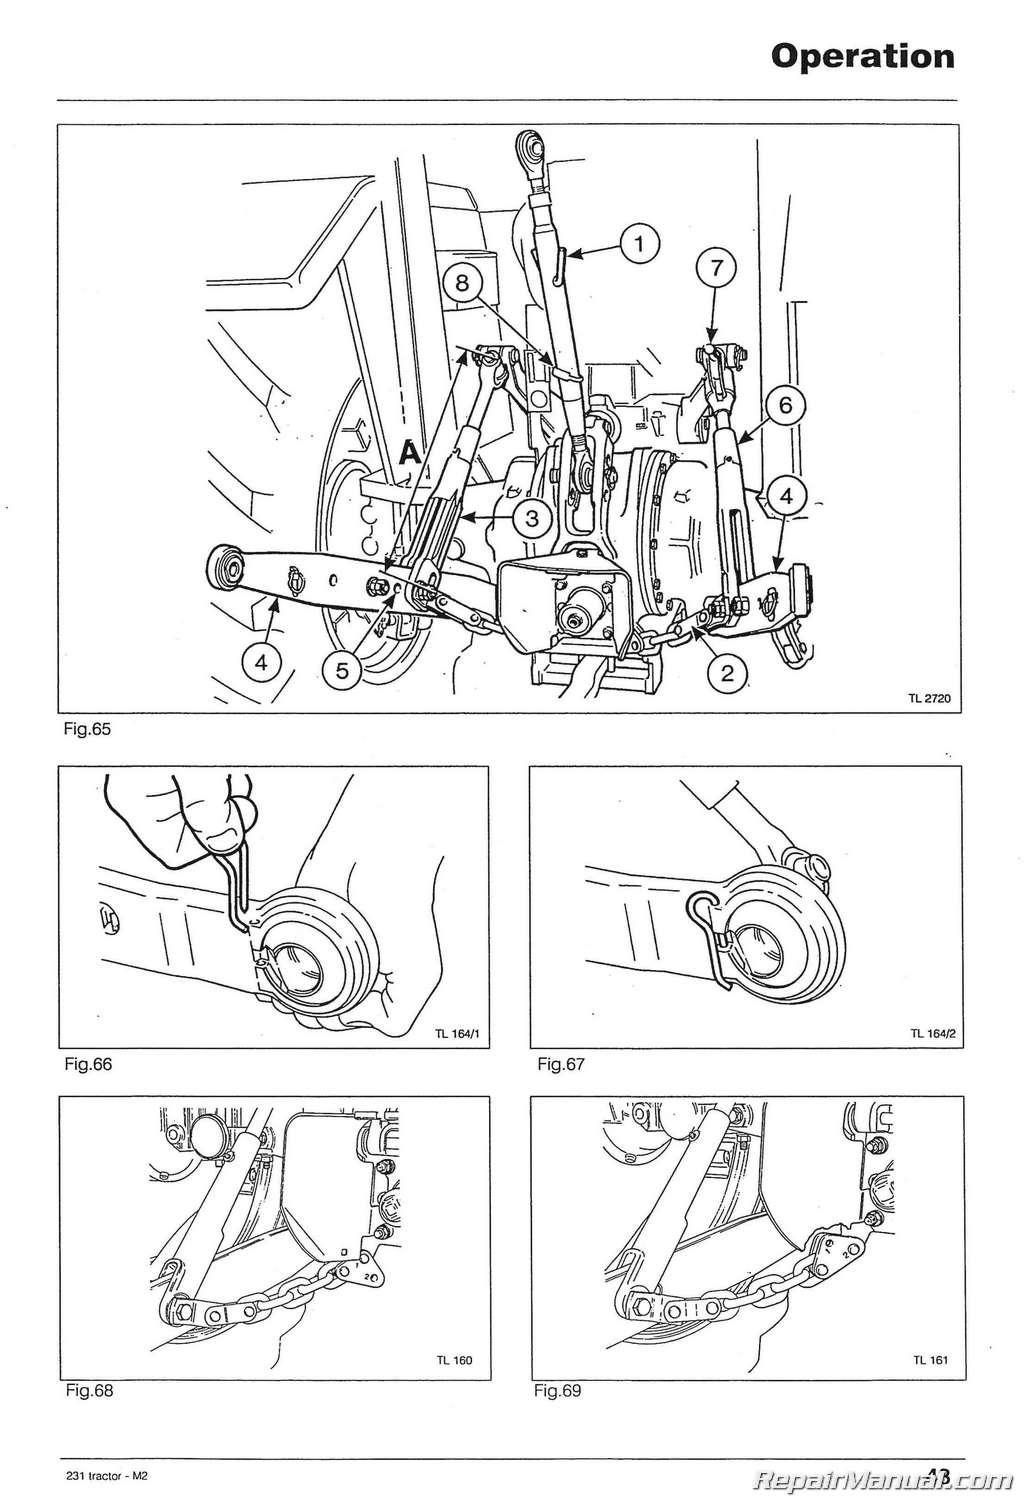 1100 Ford Tractor Wiring Diagram Massey Ferguson 231 Tractor Operator Instruction Book